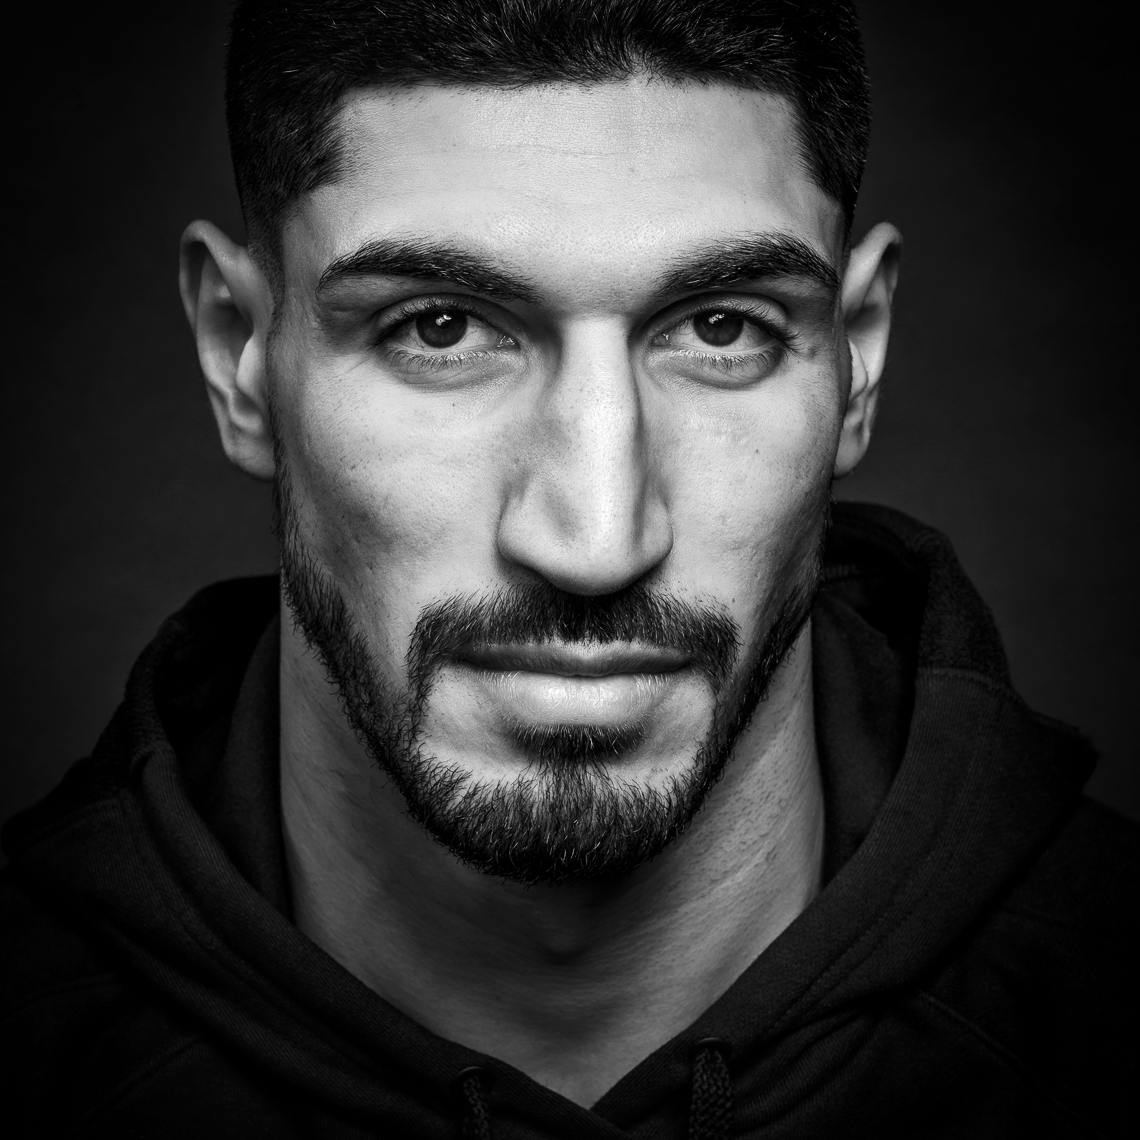 ENES KANTER,  BOSTON CELTICS • THE WALL STREET JOURNAL • JASON GROW PHOTOGRAPHY